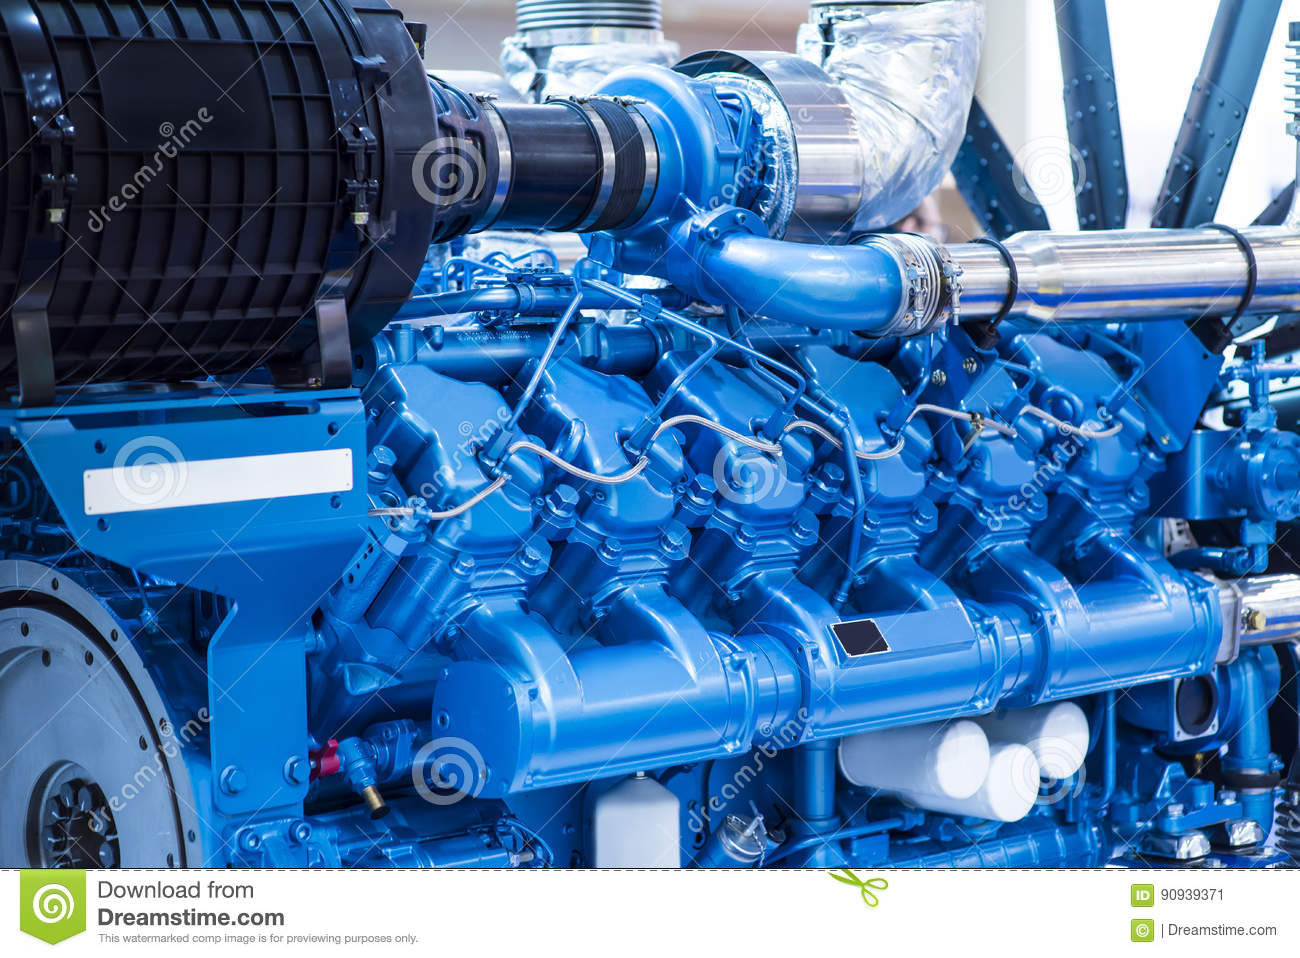 Diesel engine for boat stock image  Image of manufacturing - 90939371